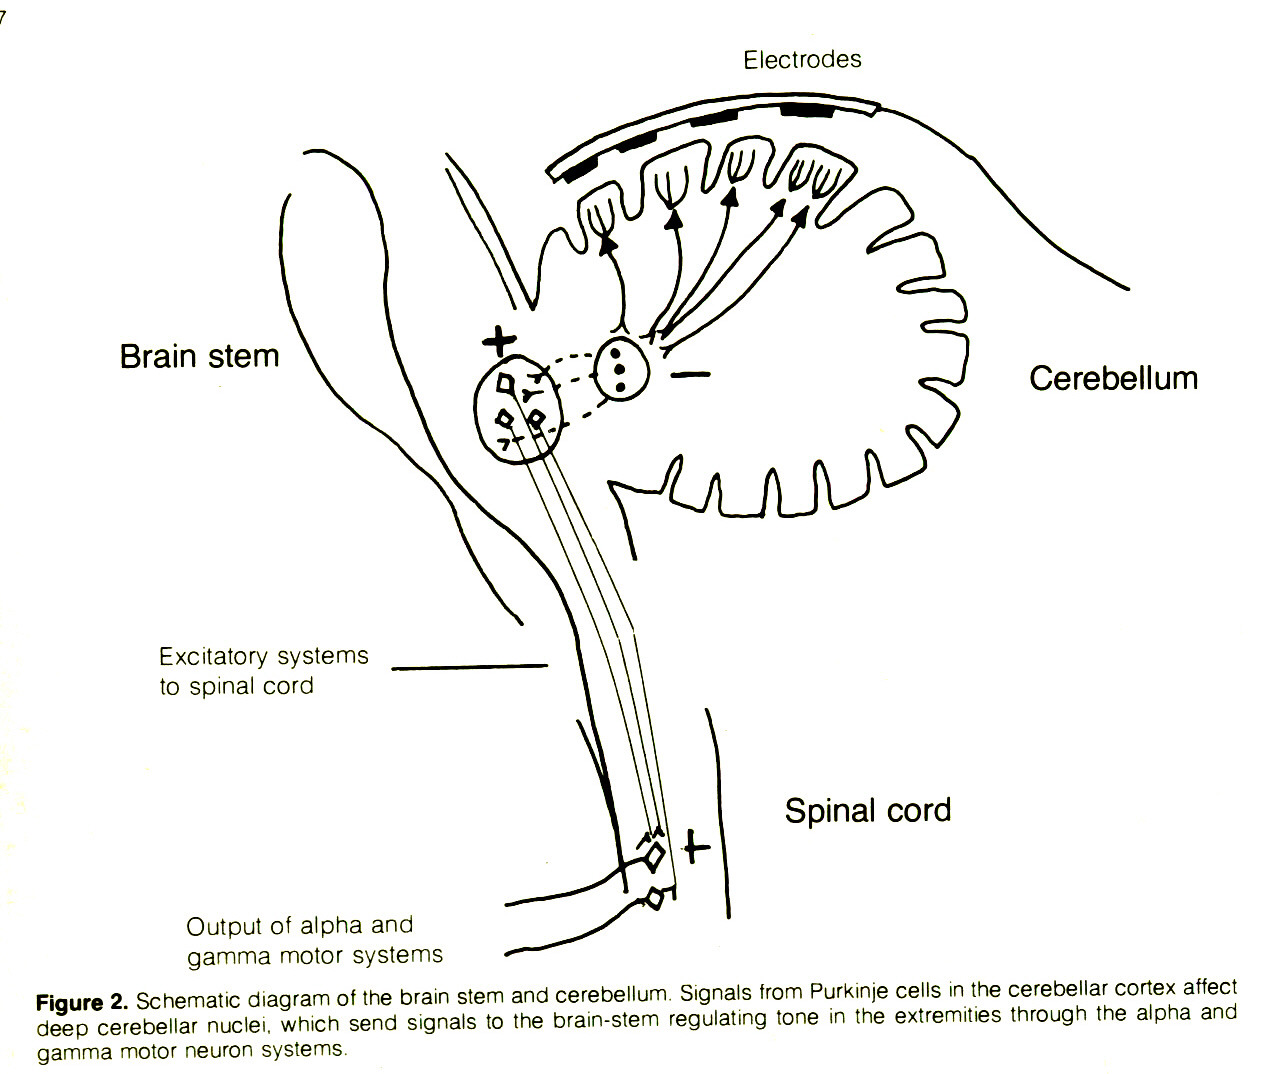 Figure 2. Schematic diagram of the brain stem and cerebellum Signals from Purkinje cells m the cerebellar cortex affect deep cerebellar nuclei, which send signals to the brain-stem regulating tone in the extremities through the alpha and gamma motor neuron systems.